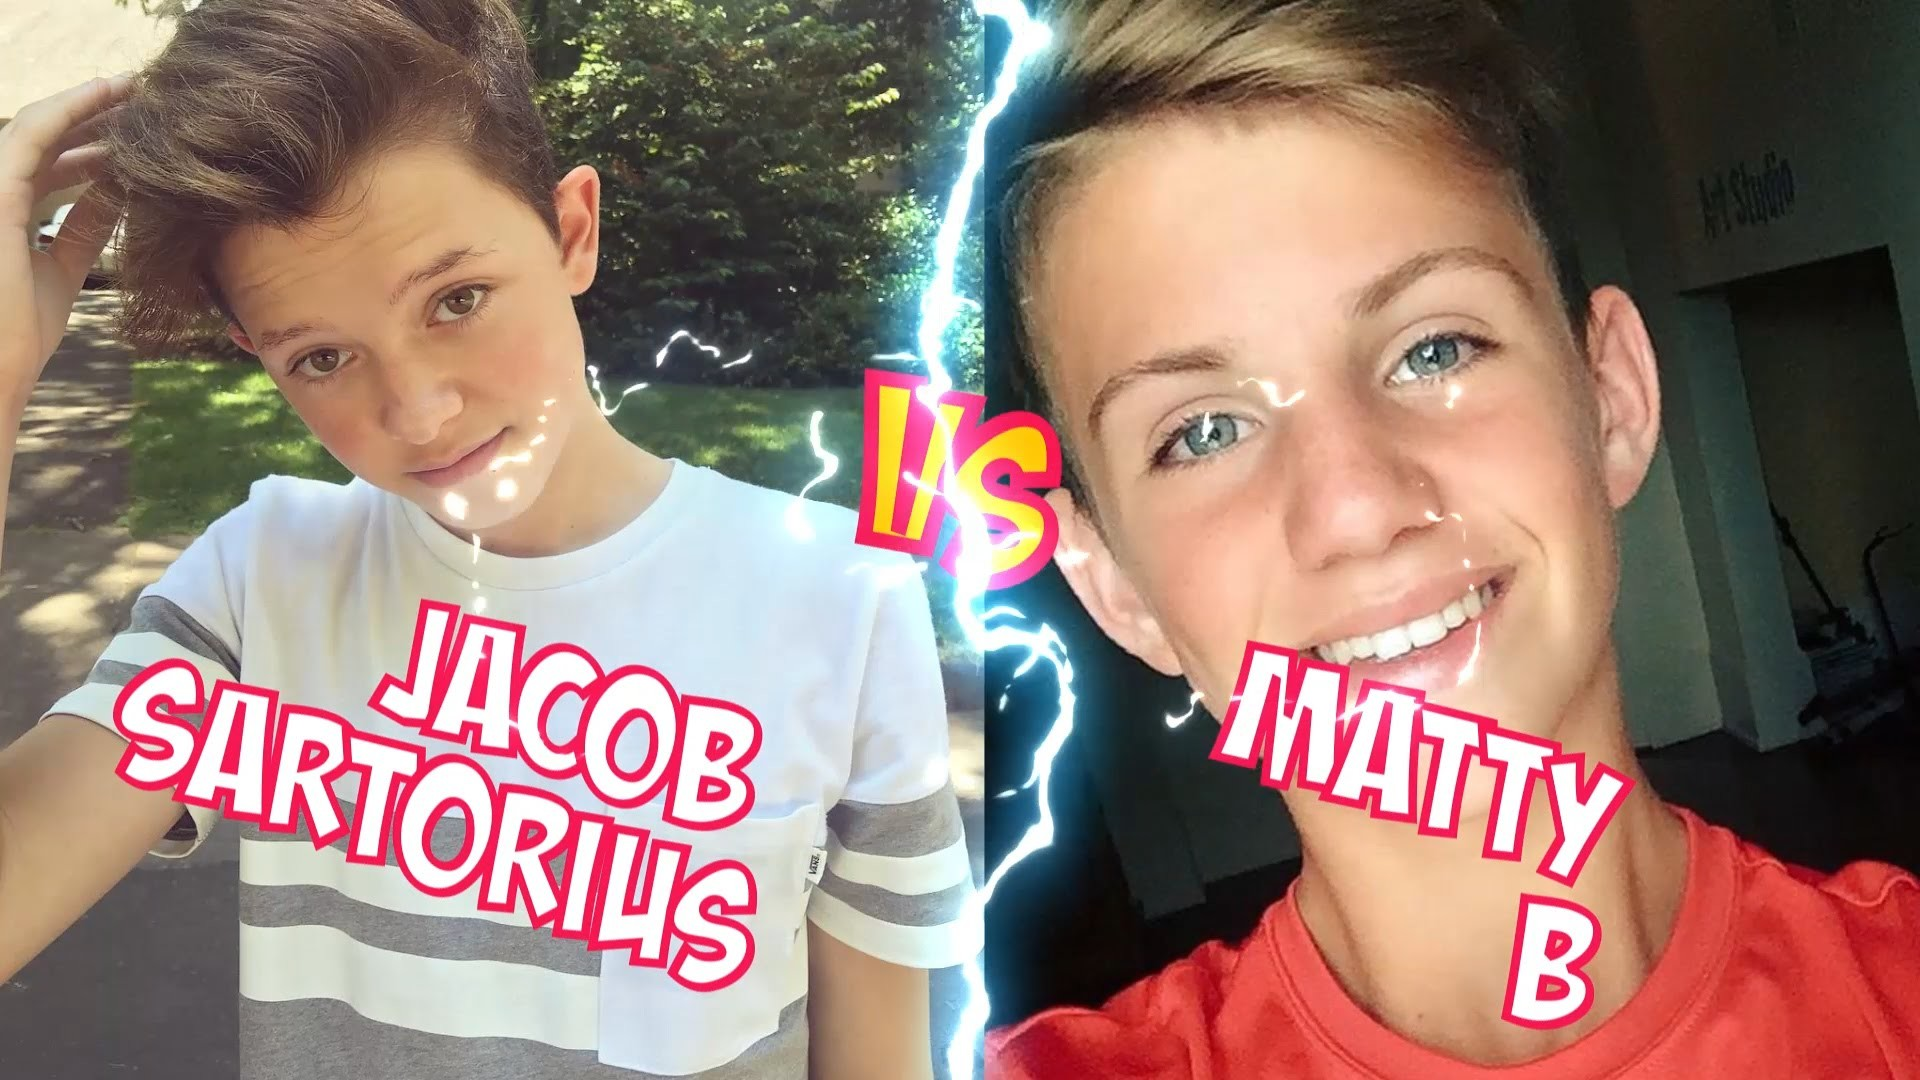 1920x1080 Jacob Sartorius VS MattyB l Battle